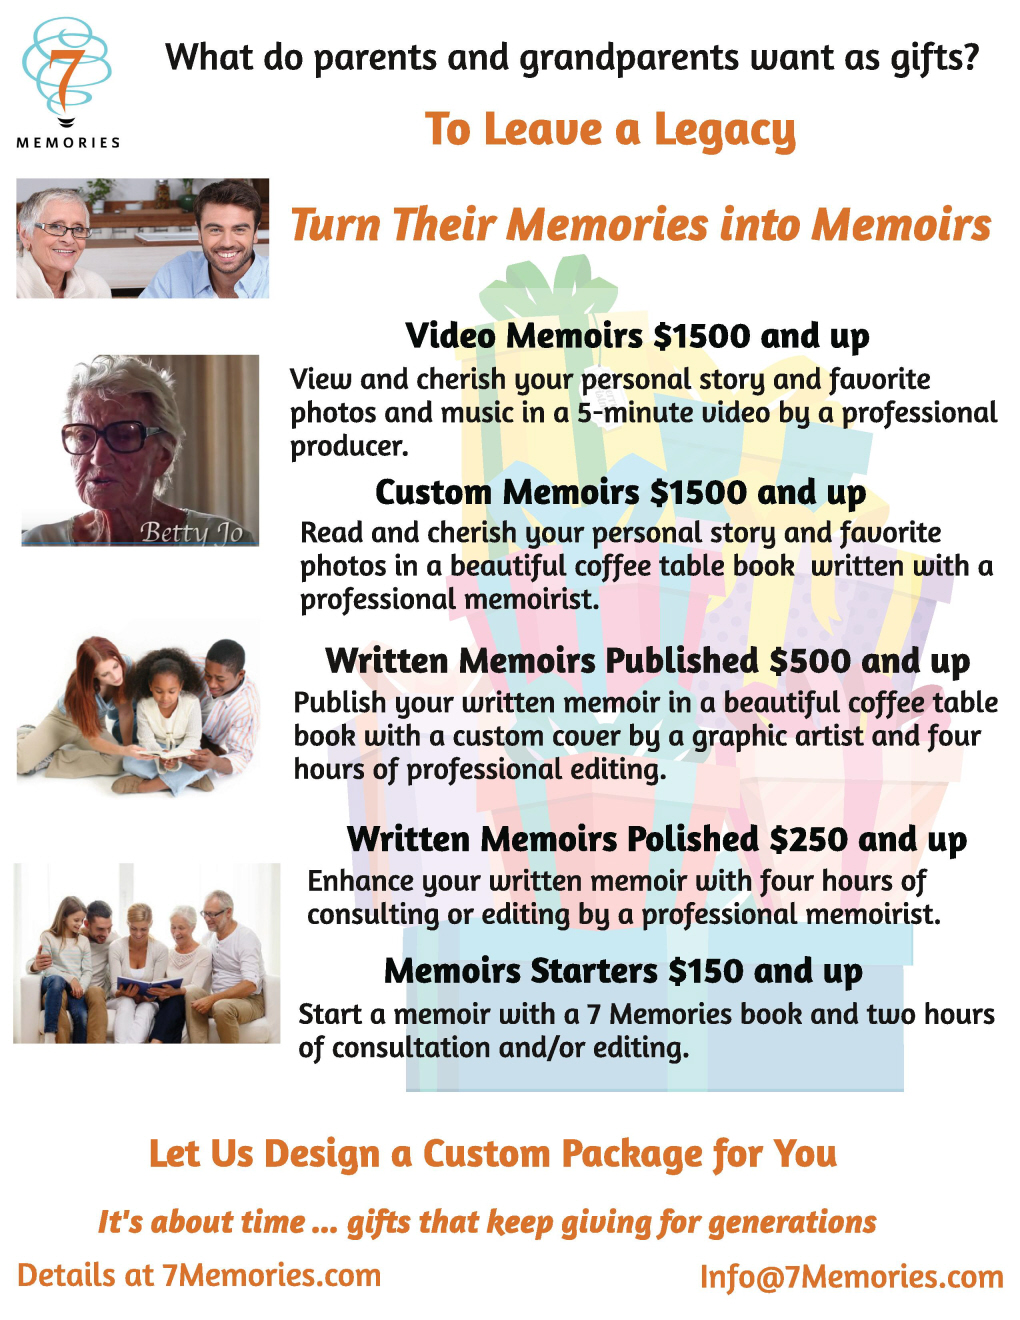 Unique gifts for parents and grandparentsleave a legacy create a legacy that will live forever write it yourself partner with a loved one or let 7 memories do it for you solutioingenieria Choice Image